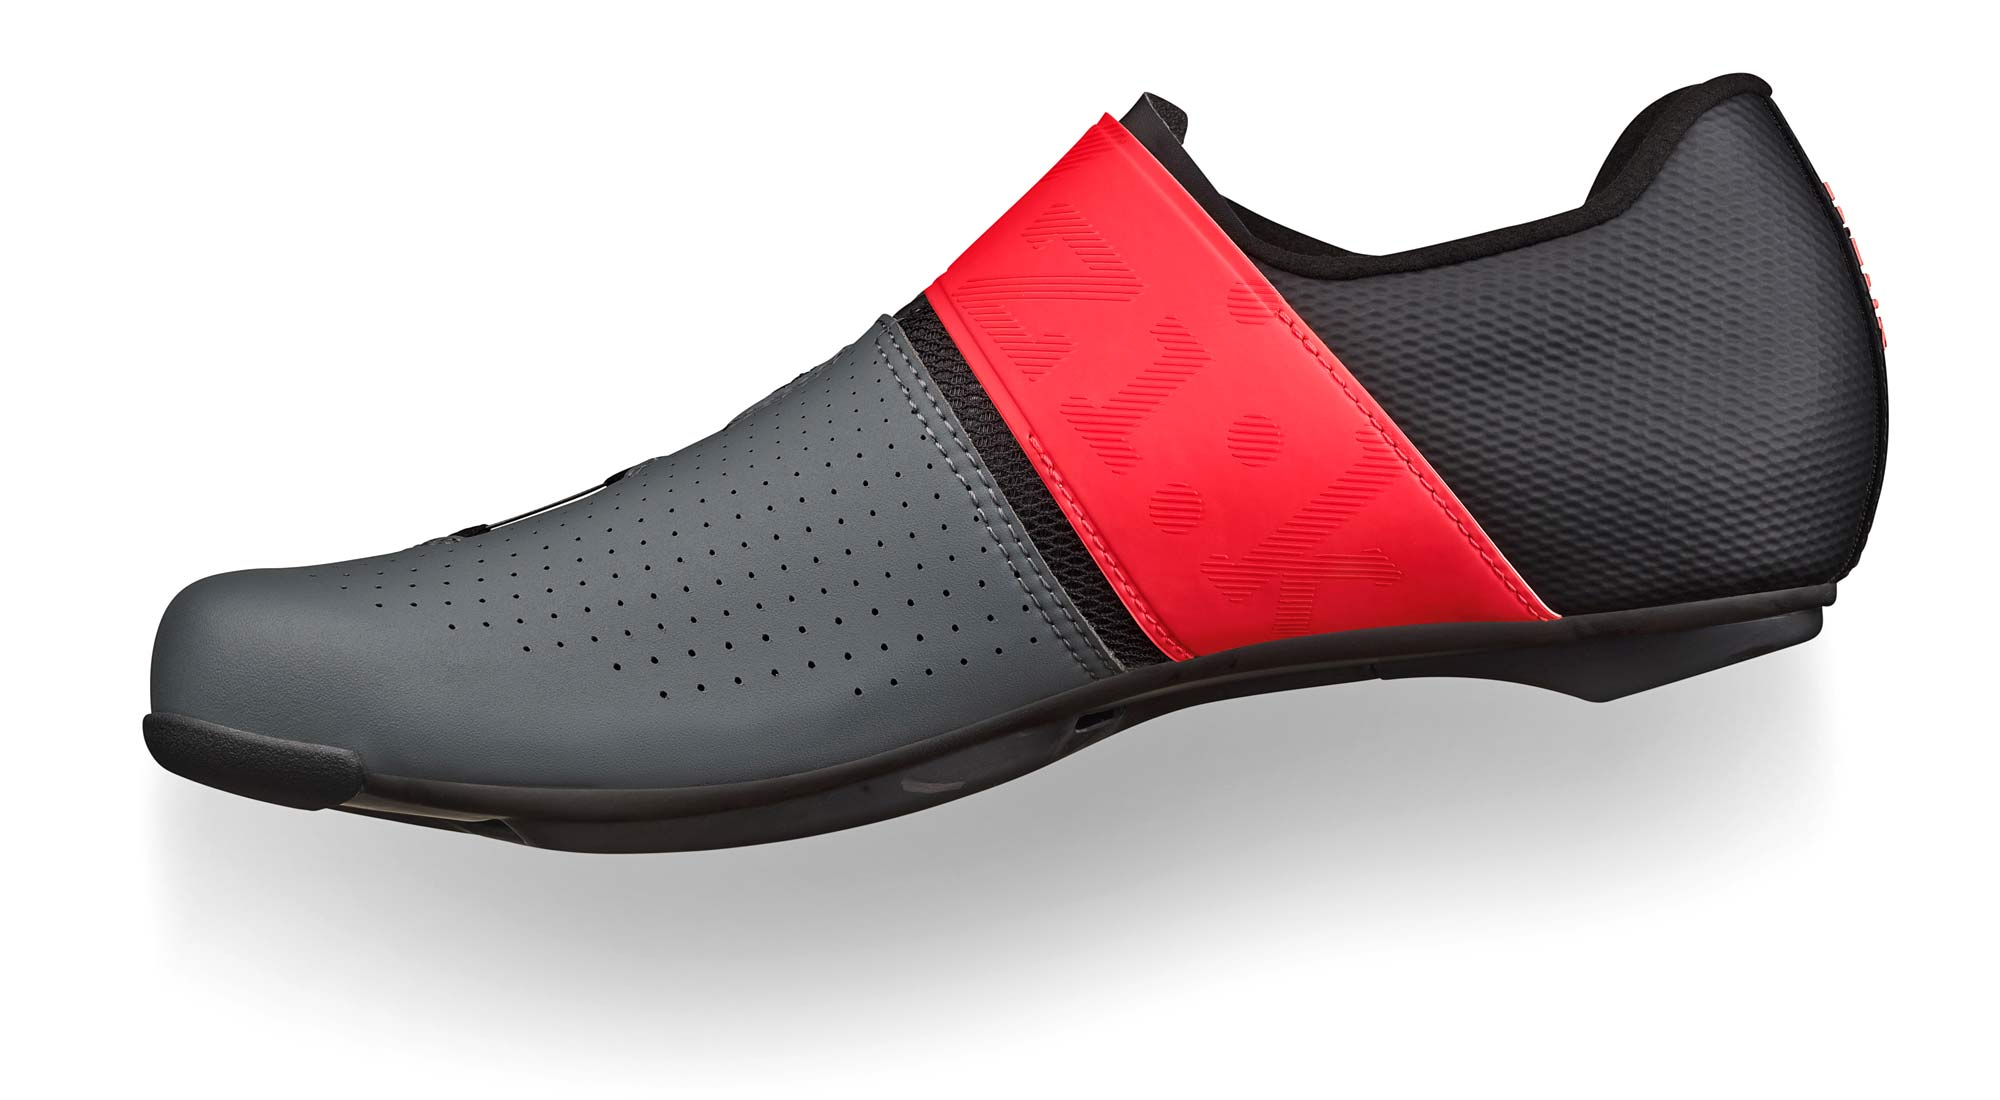 Fizik-Vento-Infinito-Carbon-2-road-shoes_lightweight-breathable-stiff-microtex-or-knit-road-racing-shoes_inside-detail.jpg